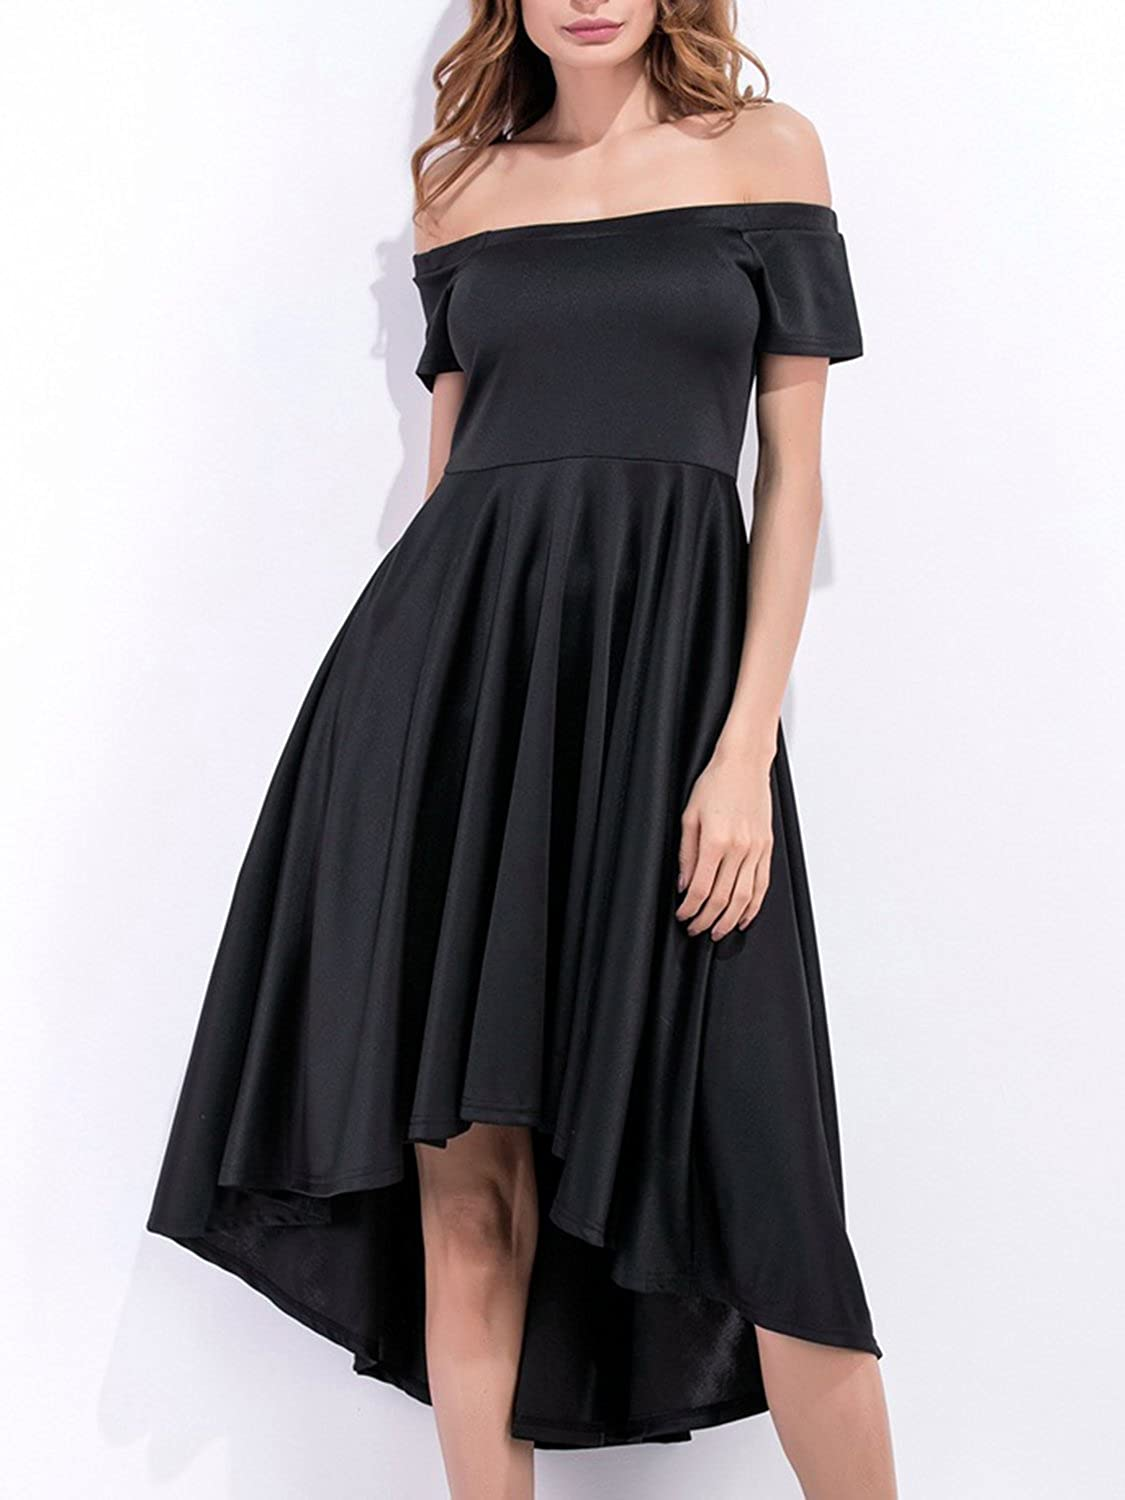 Women s Sexy Off Shoulder Short Sleeve High Low Skater Swing Prom Dress -Burdungy Black at Amazon Women s Clothing store  46d1766bad